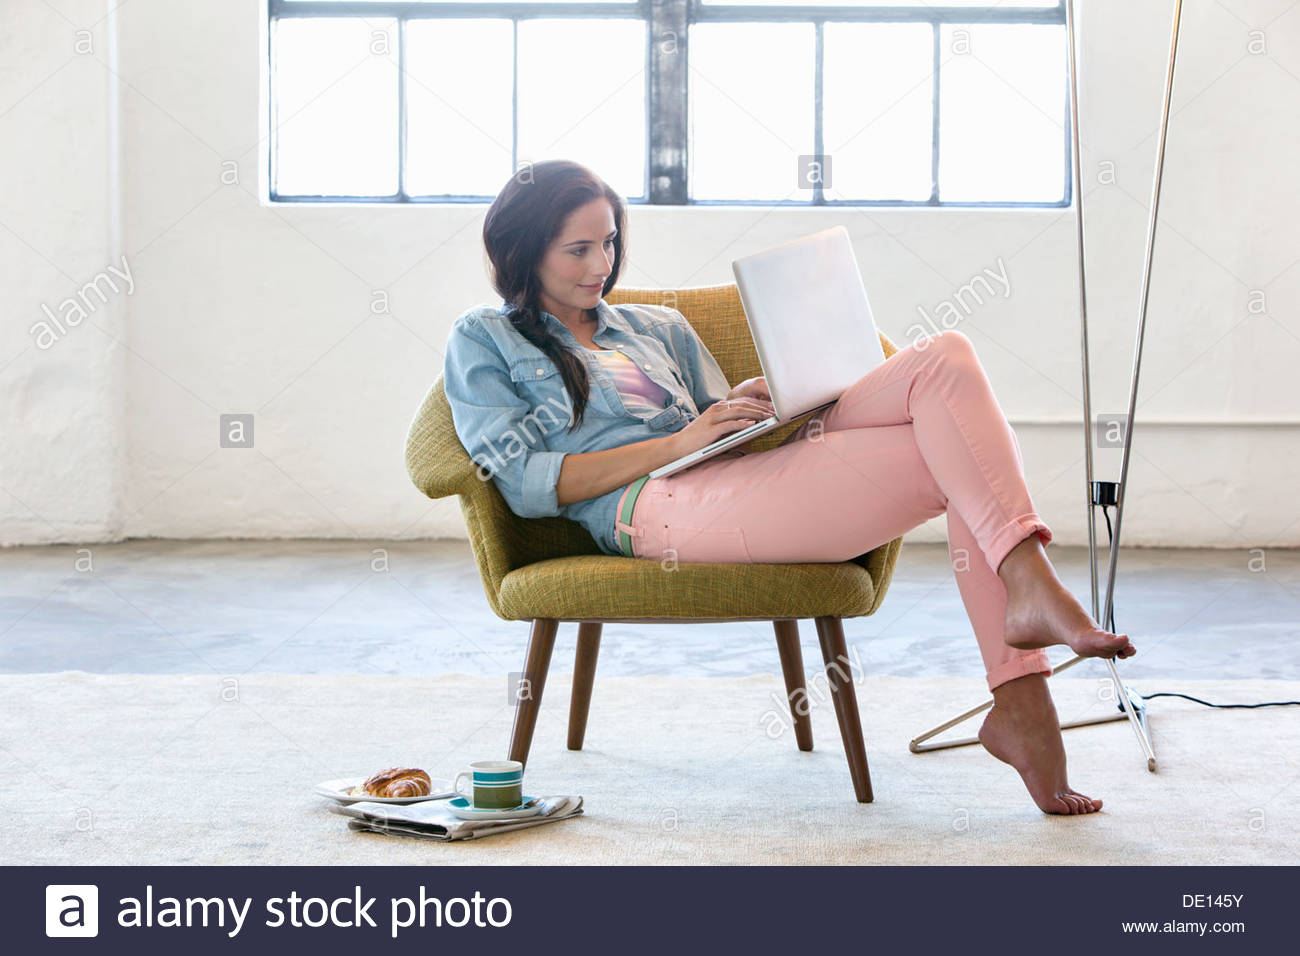 Woman using laptop in armchair - Stock Image